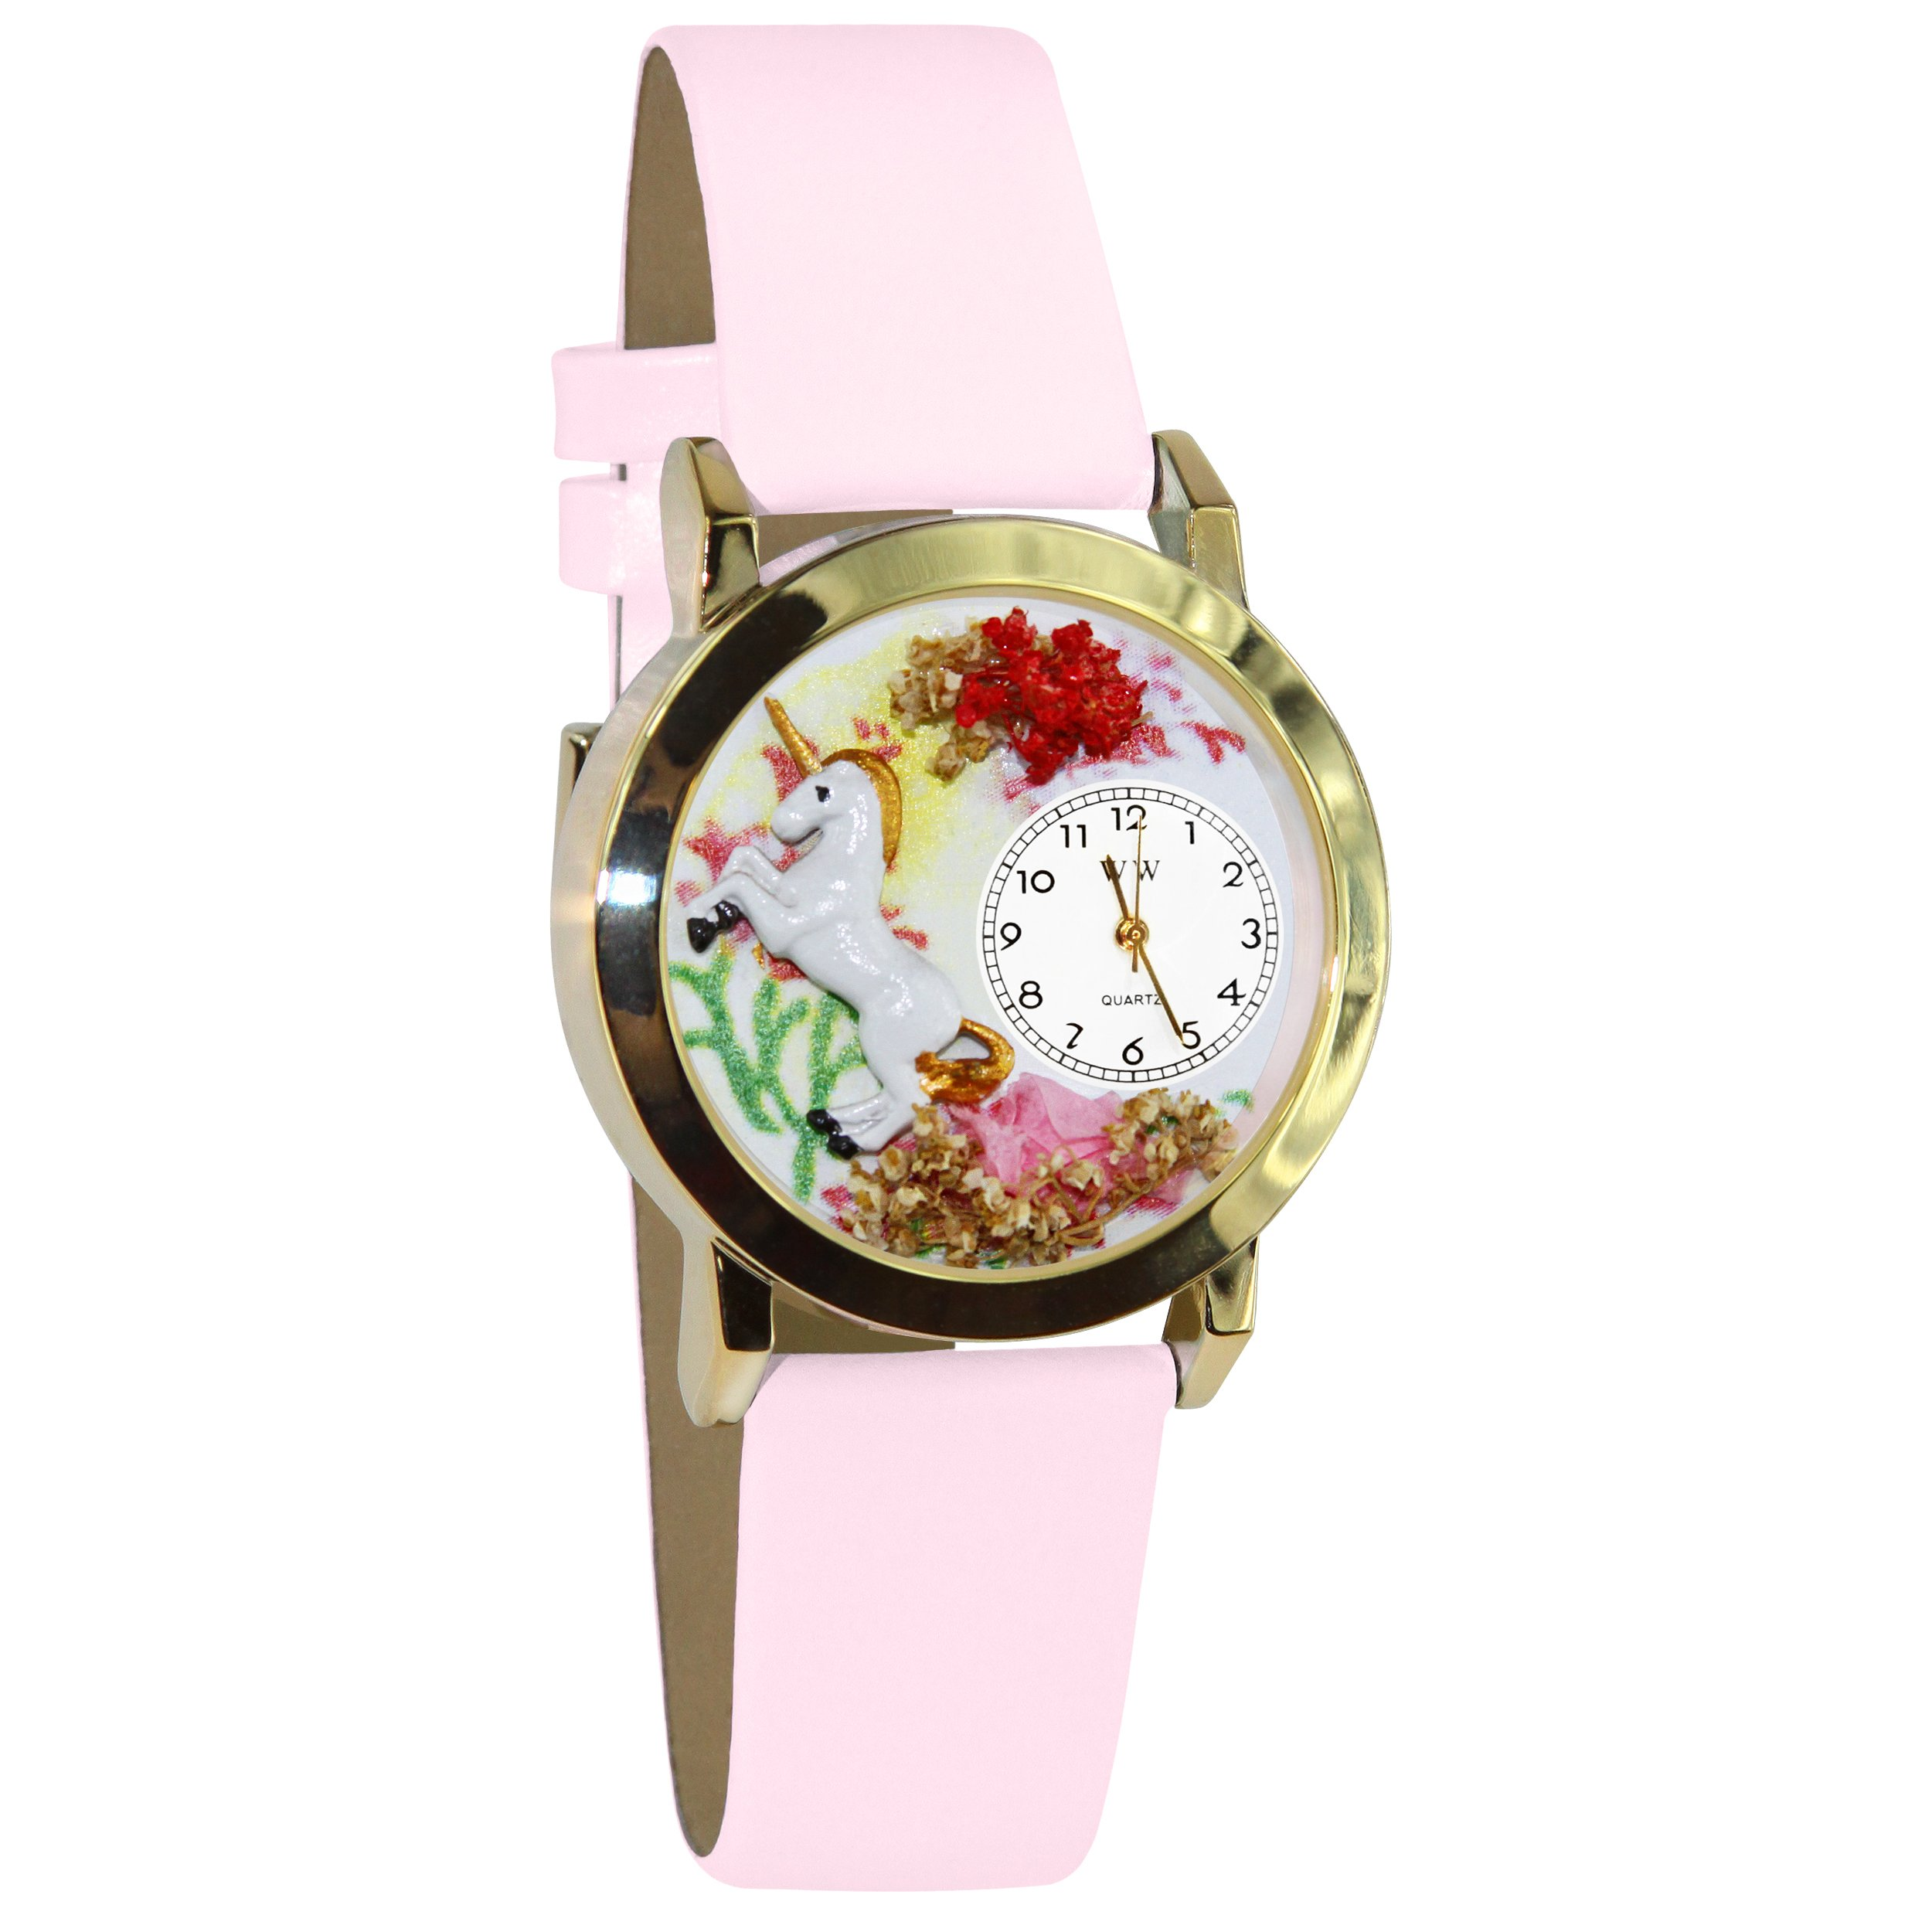 Whimsical Watches Kids' C0420001 Classic Gold Unicorn Pink Leather And Goldtone Watch